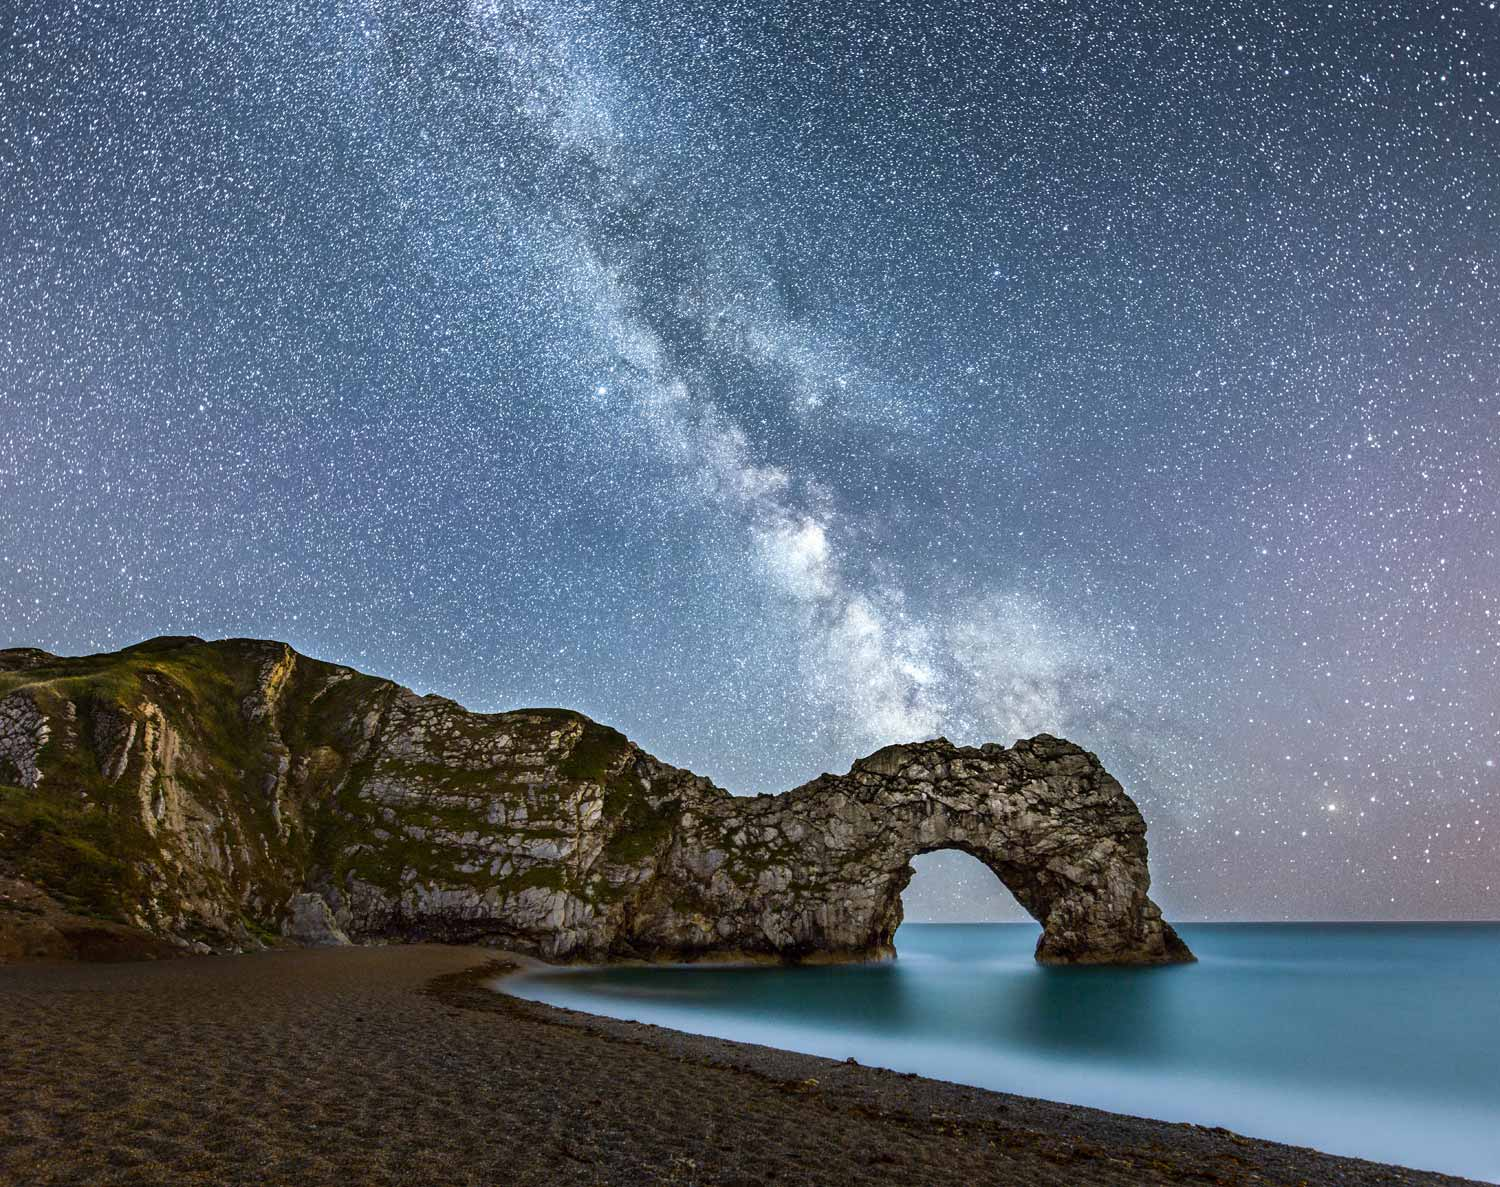 Durdle Door And The Galactic Core